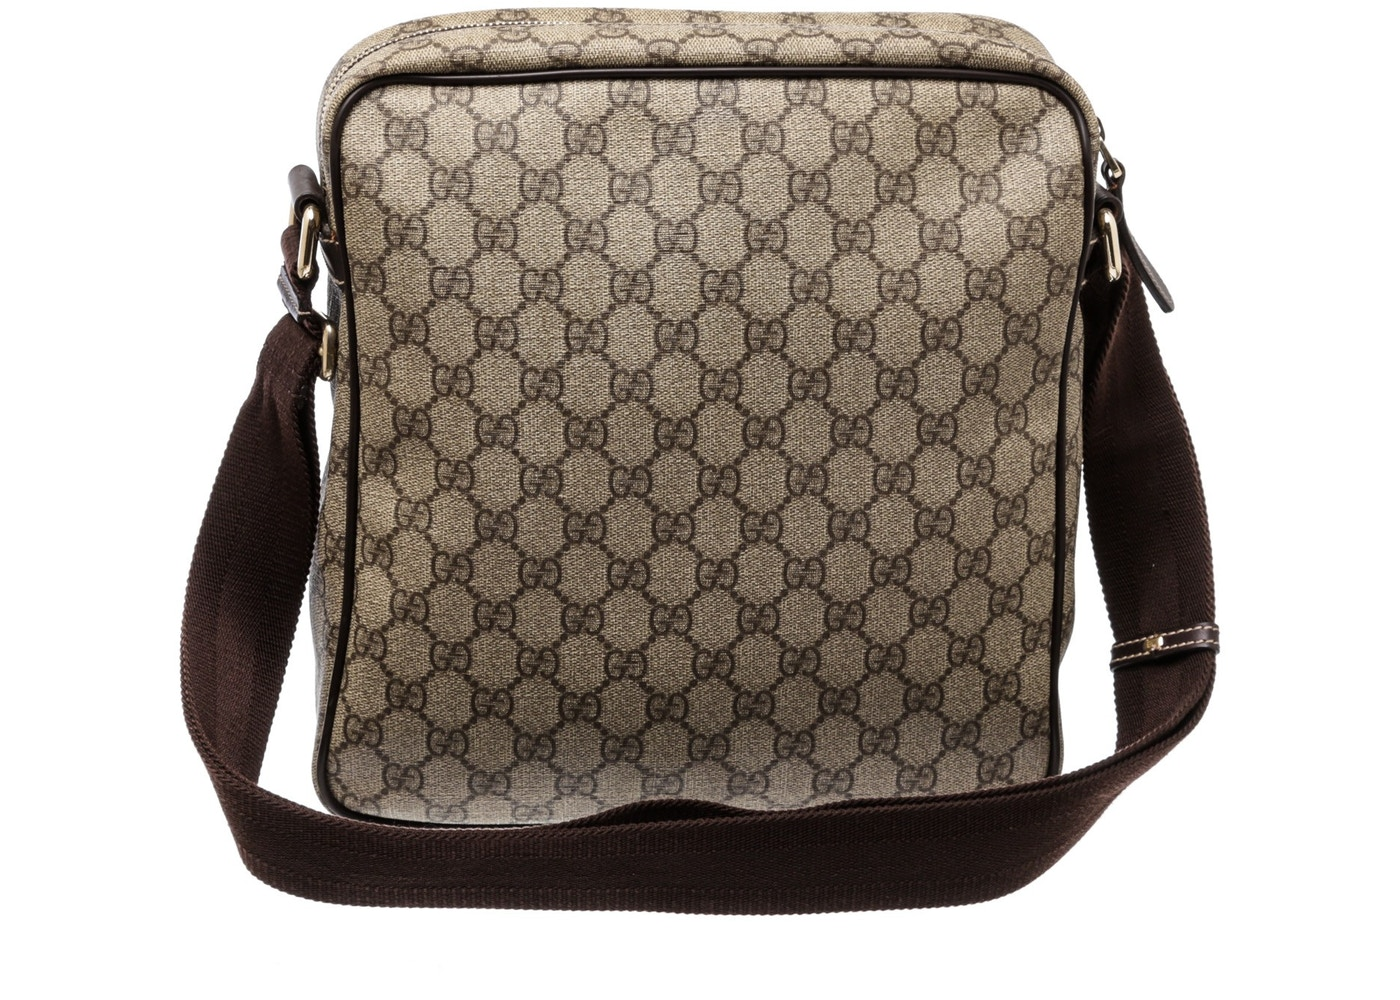 9182c8a0a851 Buy   Sell Gucci Handbags - New Lowest Asks